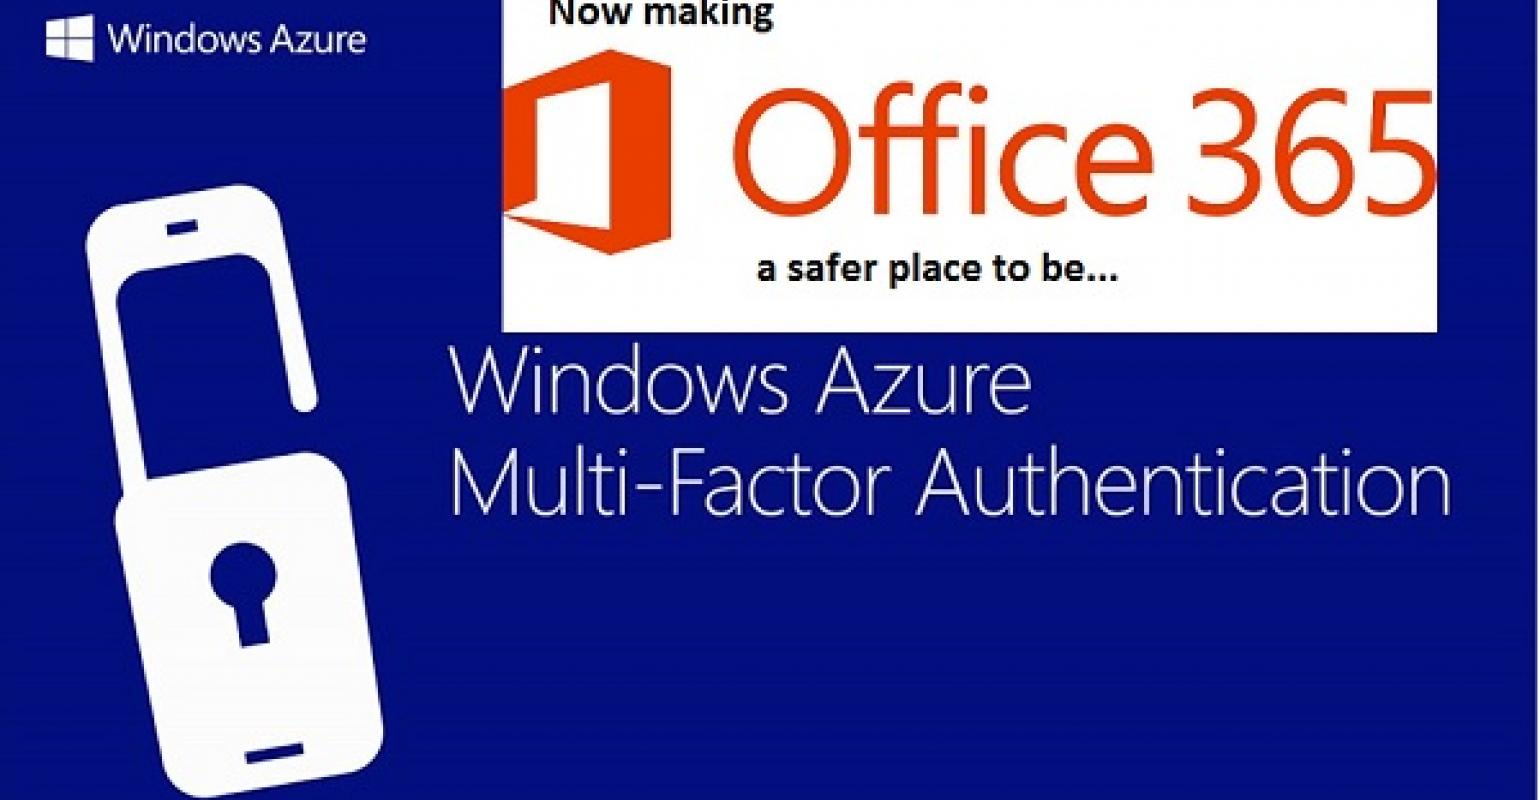 Multi-Factor Authentication and Office 365 - Better